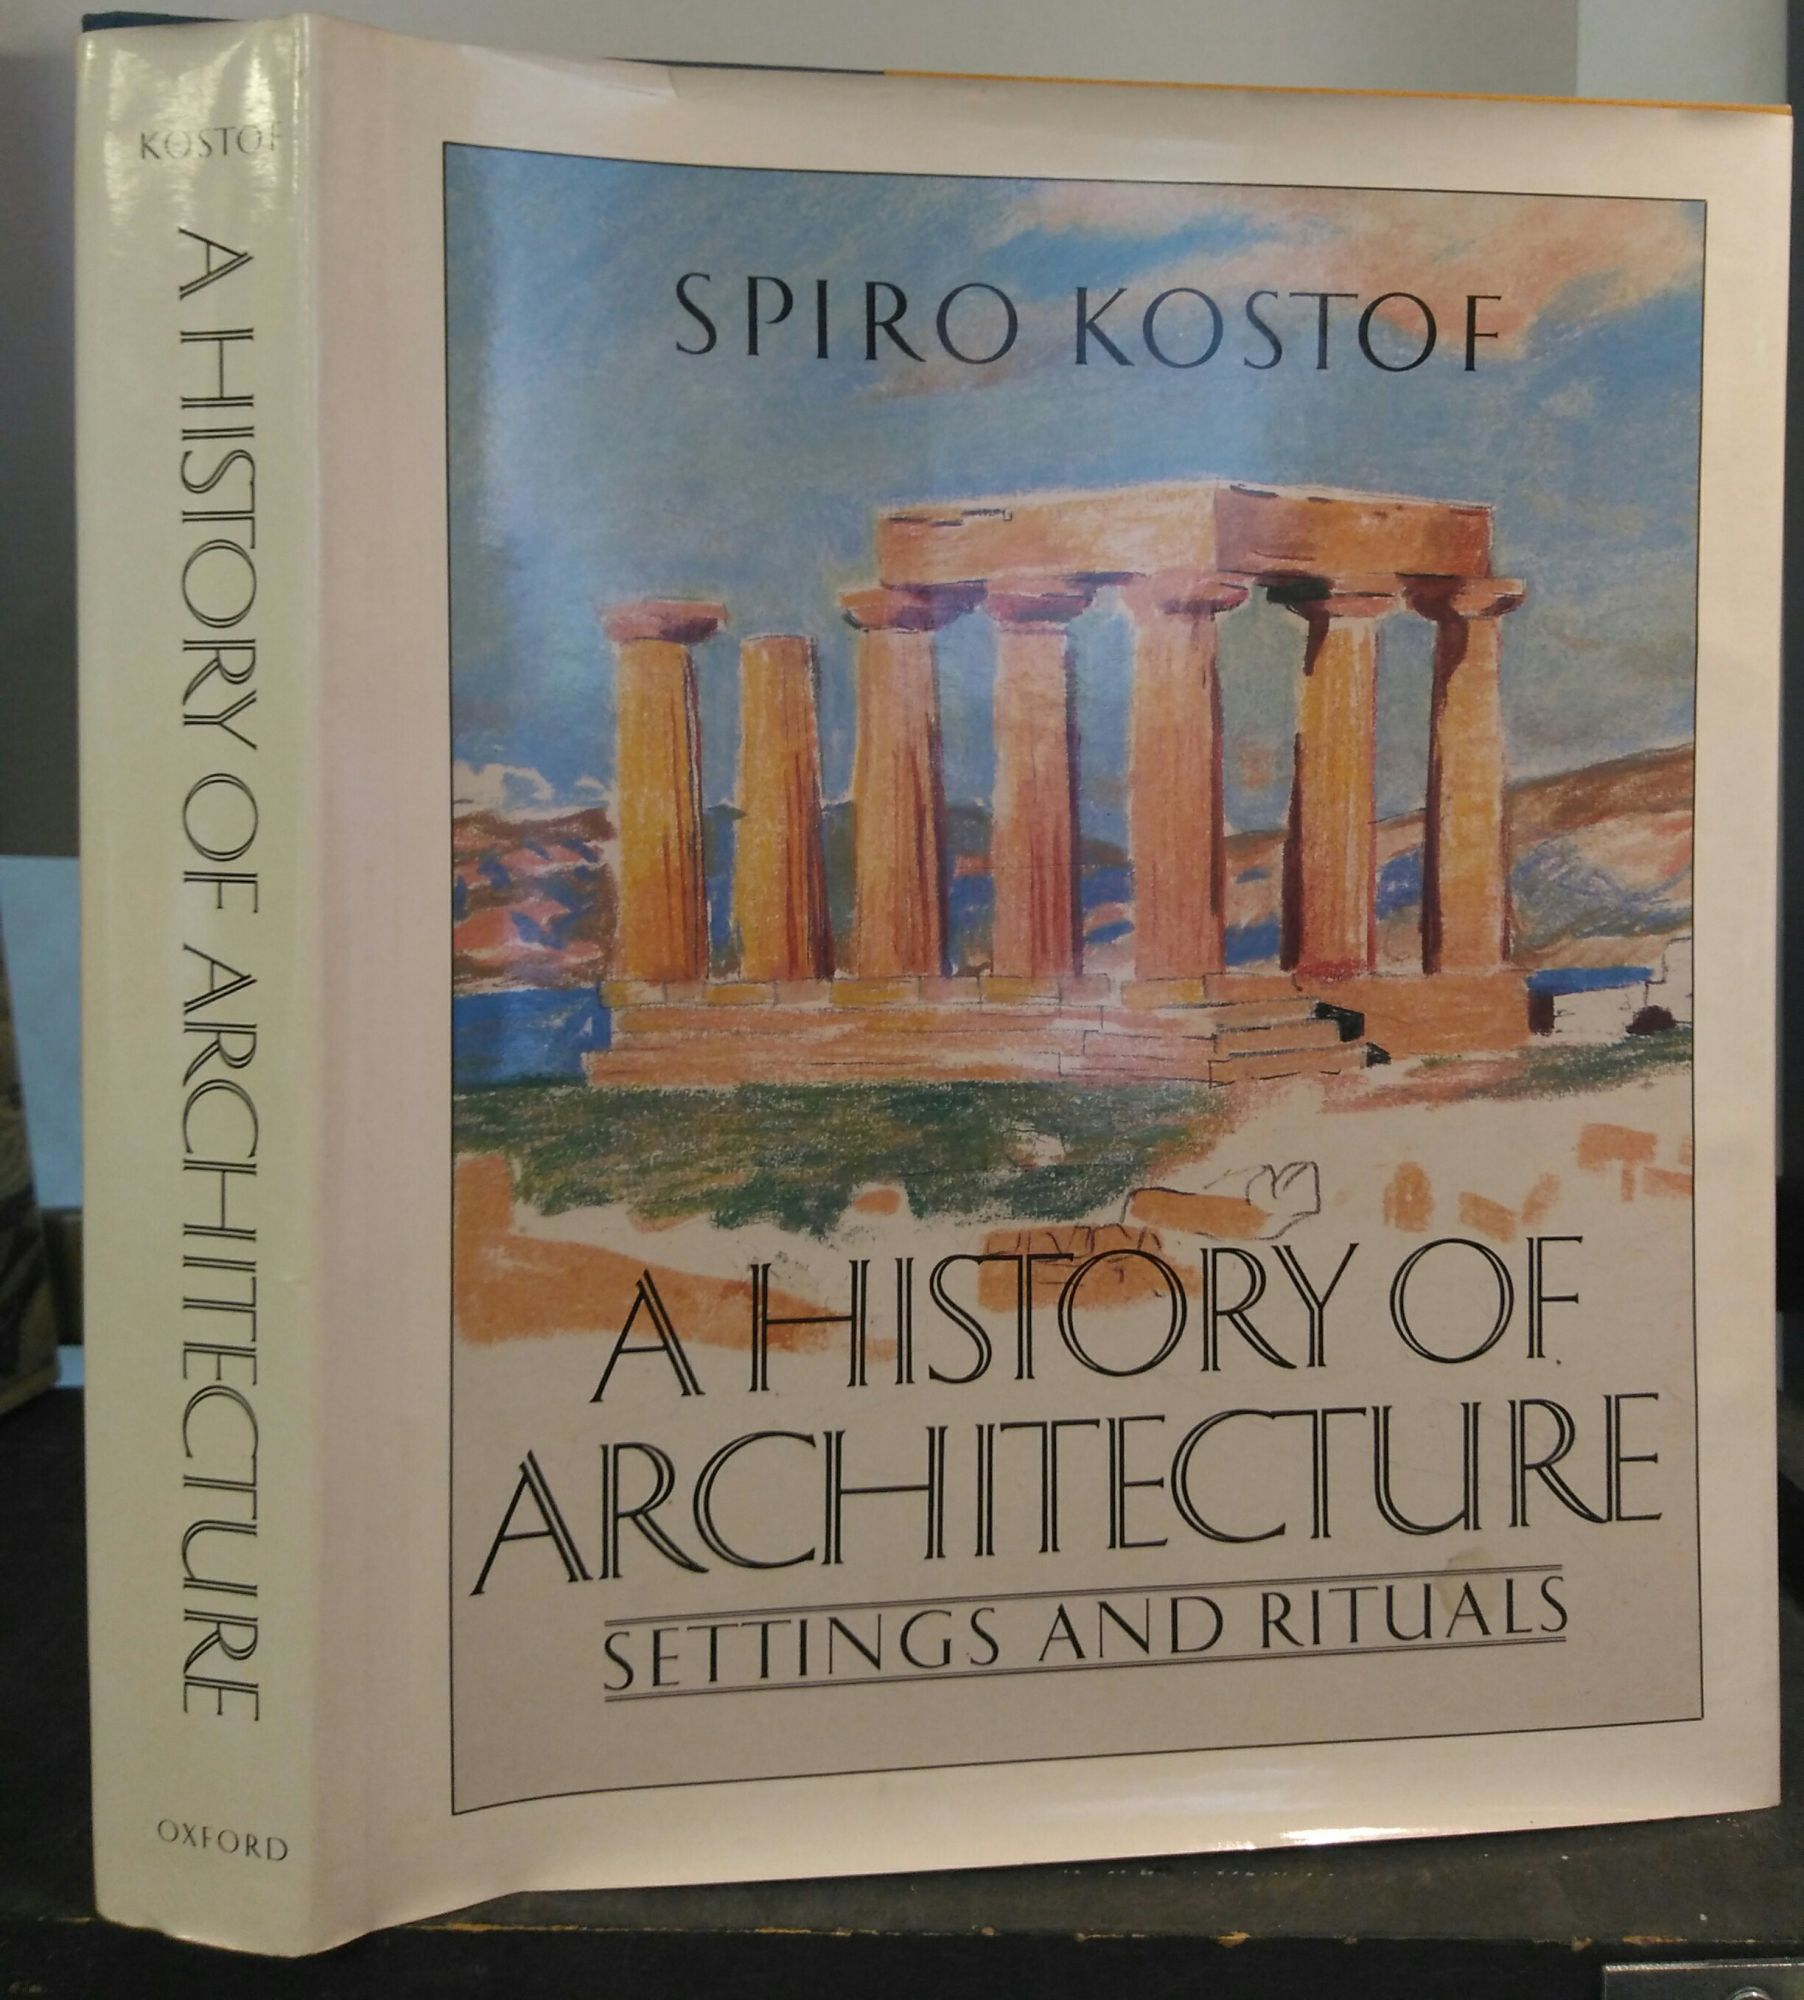 A HISTORY OF ARCHITECTURE: SETTINGS AND RITUALS [SIGNED by Kostof]. Spiro Kostof, Richard Tobias.